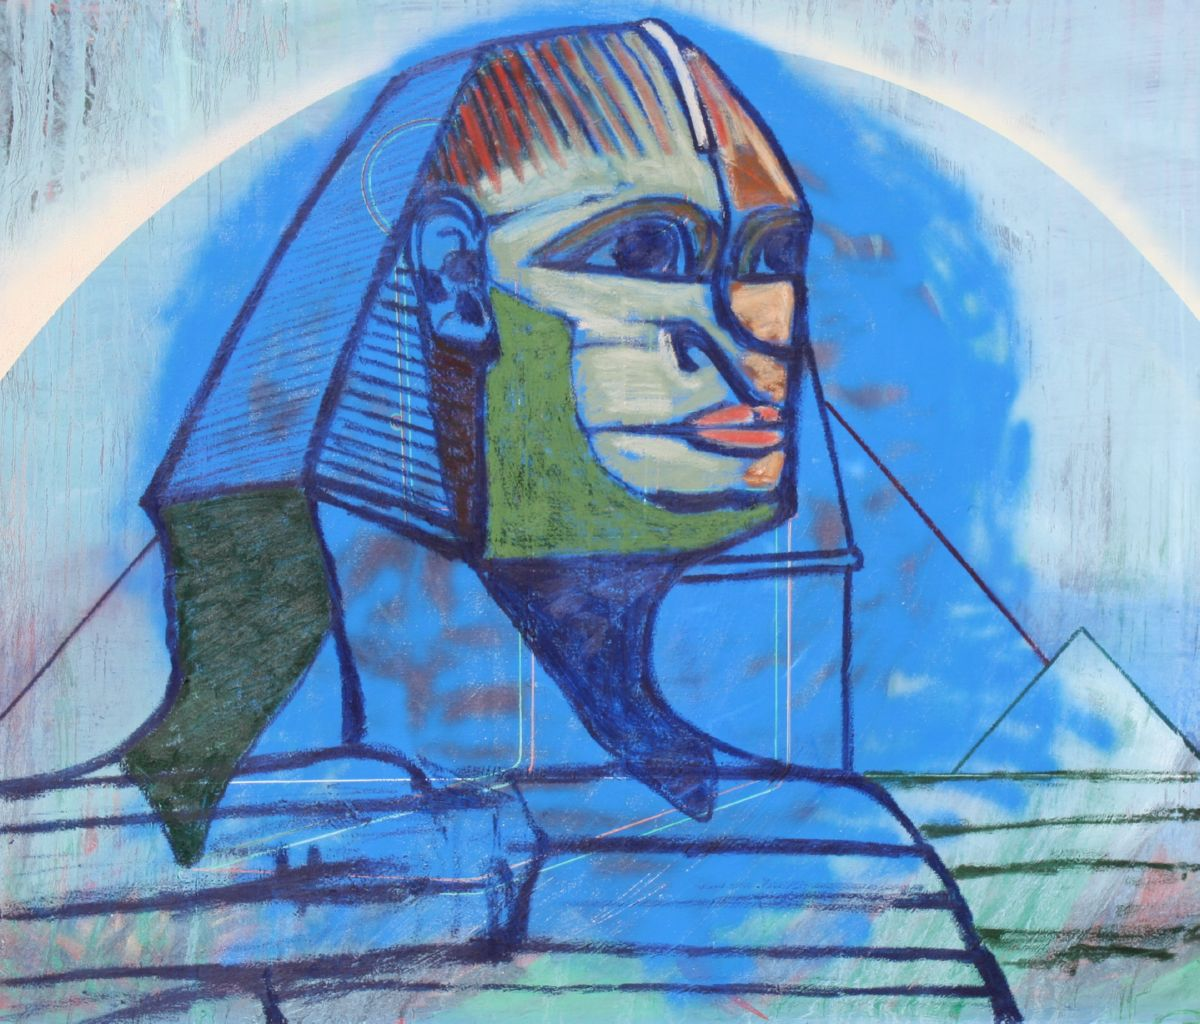 Blue Sphinx artwork by Joe McGee - art listed for sale on Artplode